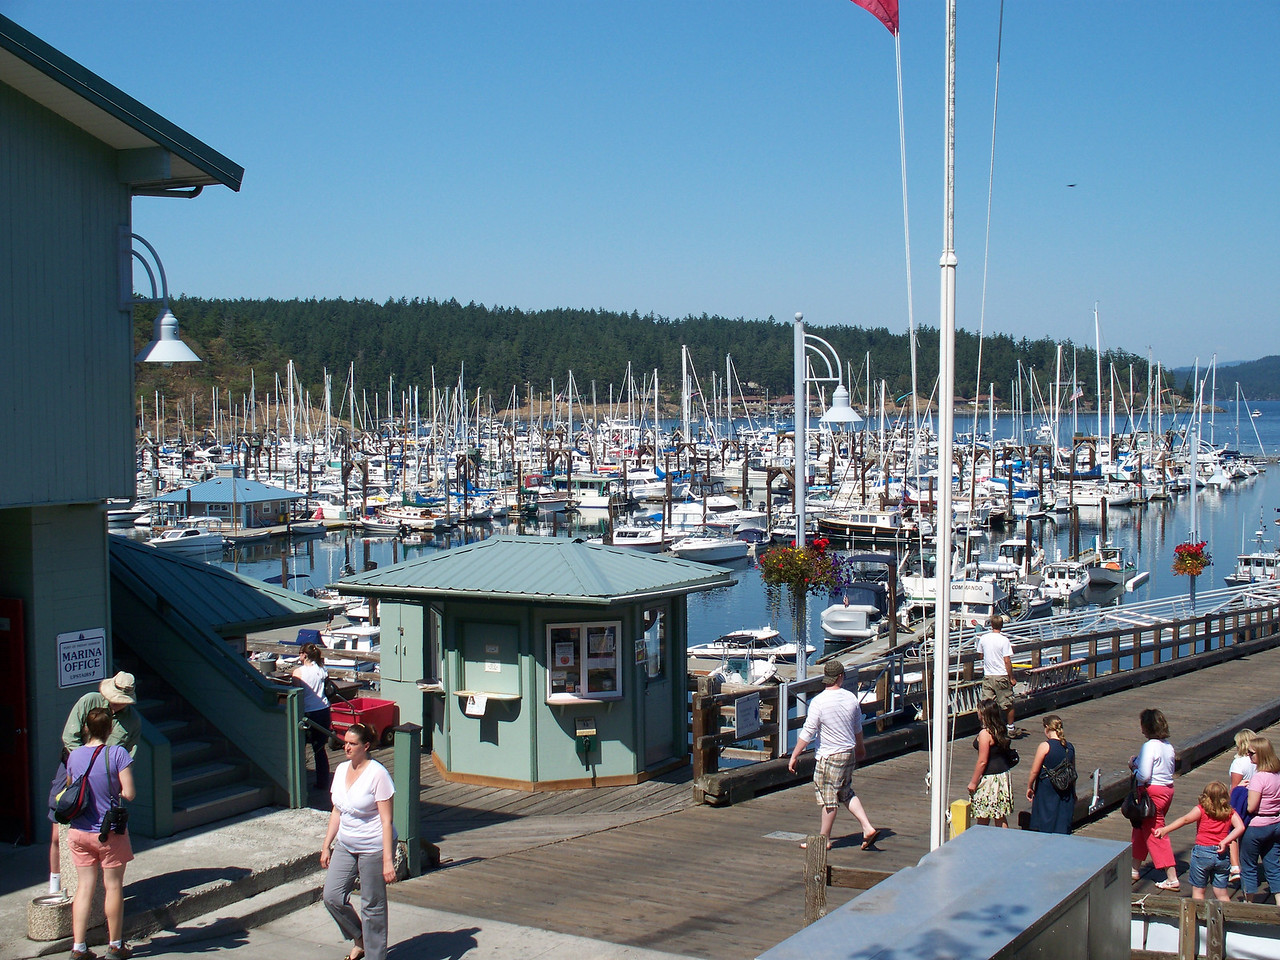 We arrived at Friday Harbor Marina in the early afternoon.   This view shows the marina from the top of the dock.  (photo by Sonia)